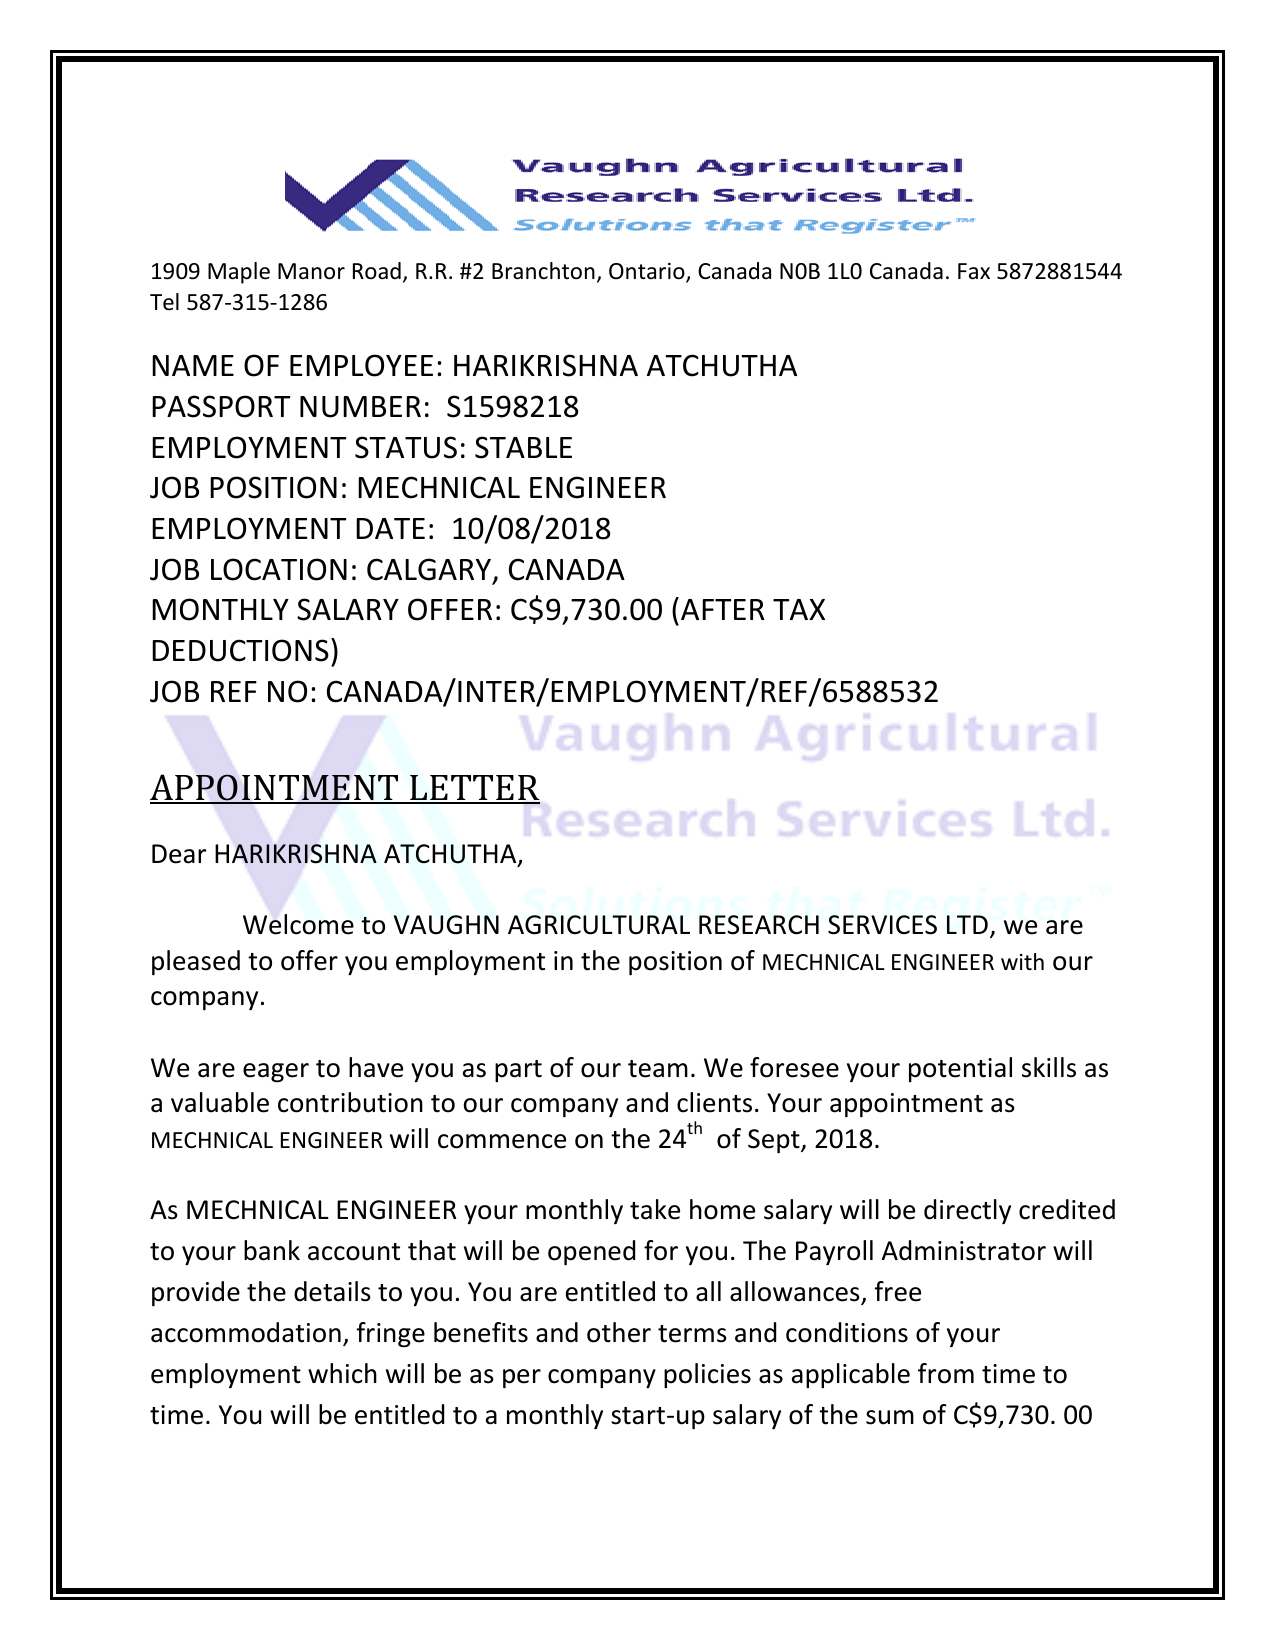 VAUGHN AGRICULTURAL RESEARCH SERVICES LTD OFFER LETTER HARIKRISHNA